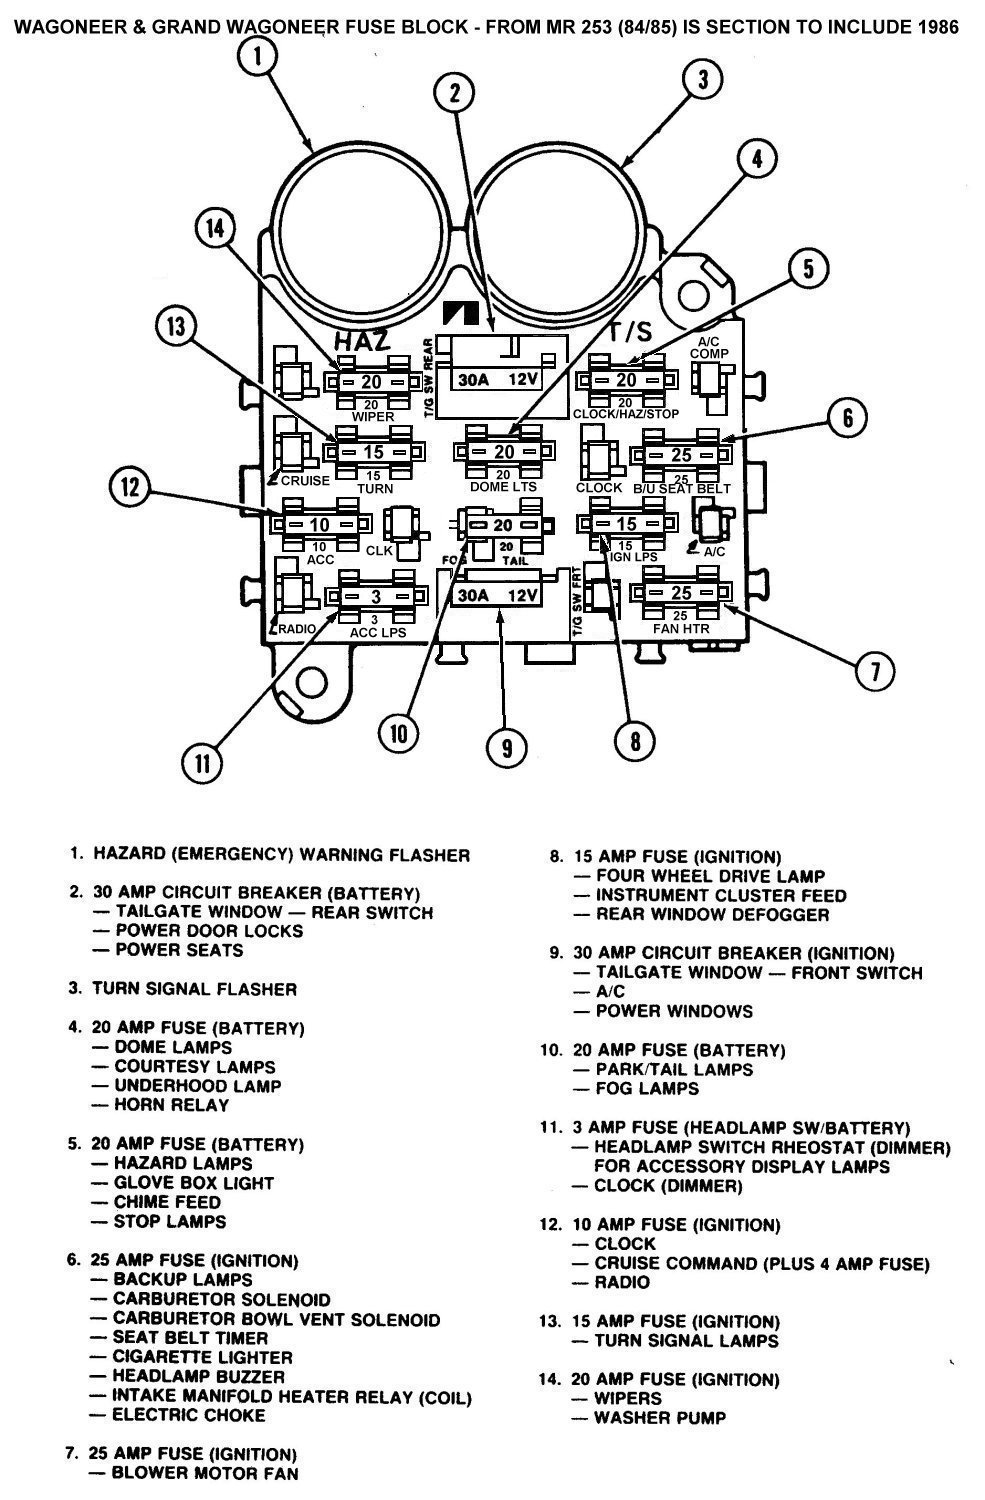 jeep cj5 fuse box wiring diagram cj5 wiring schematic 76 jeep cj7 fuse box diagram wiring diagram jeep cherokee fuse box layout jeep cj5 fuse box